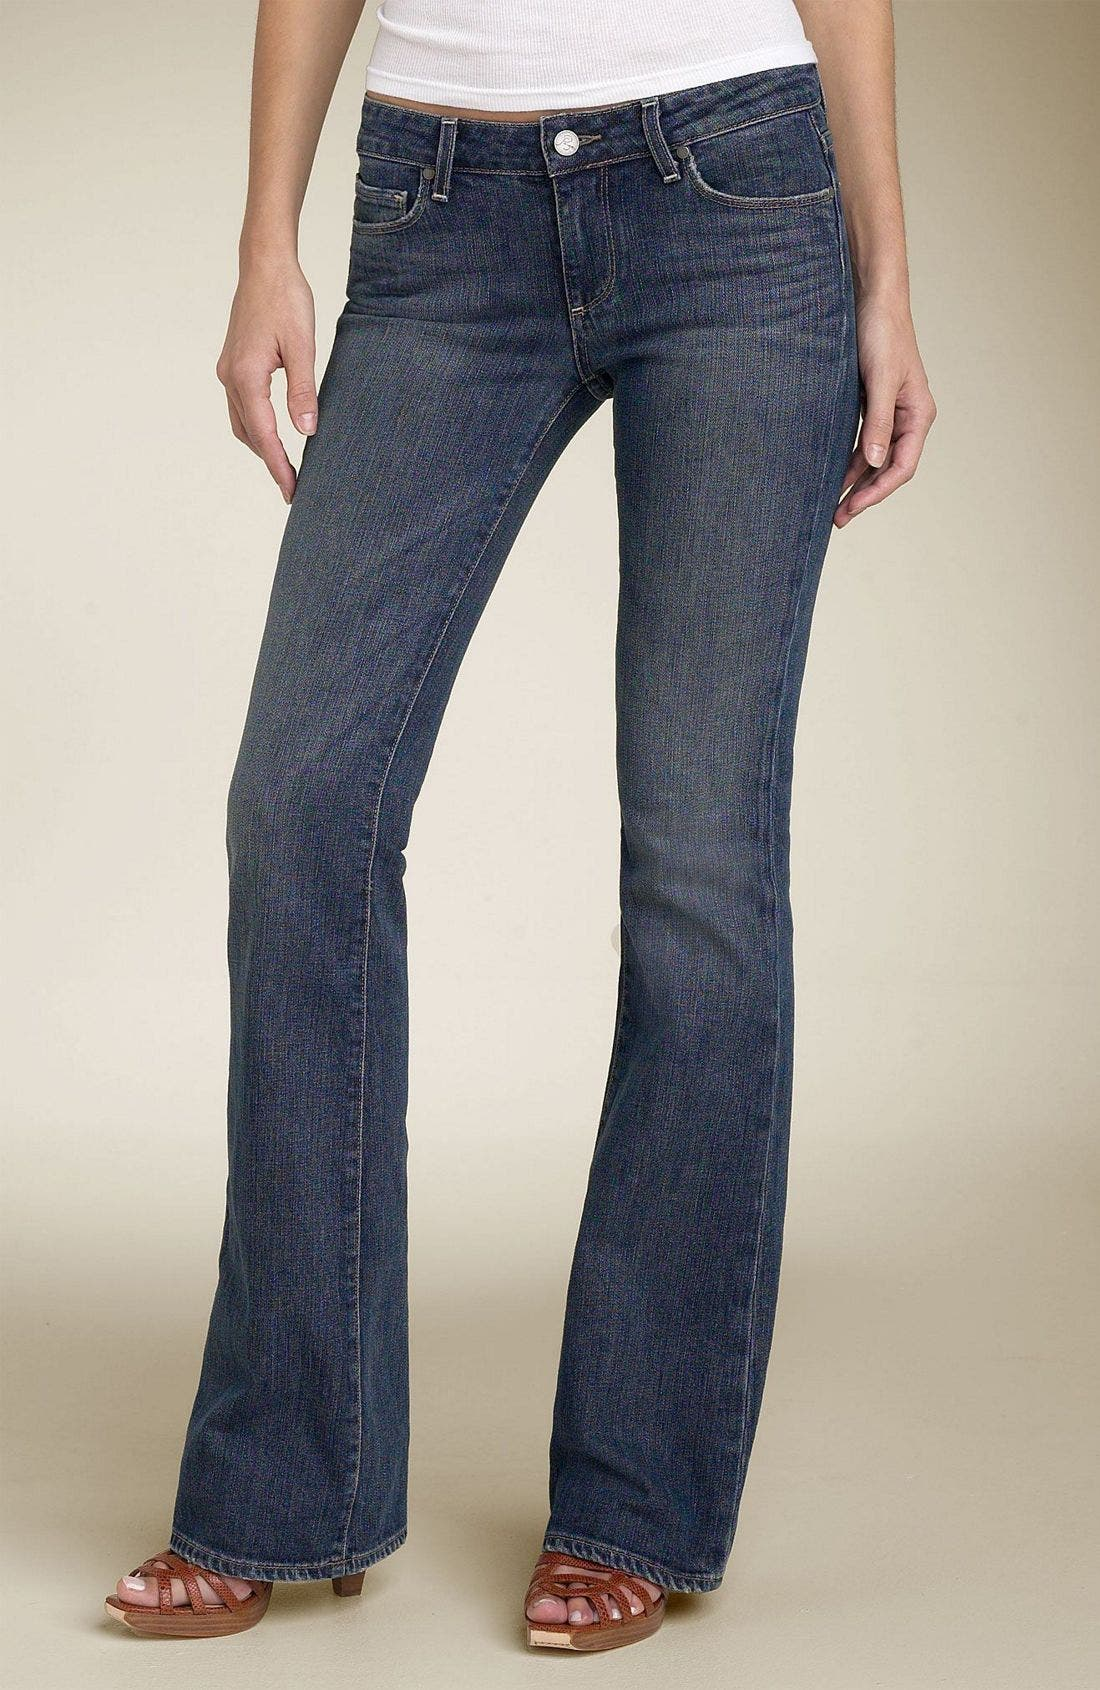 Denim 'Hollywood Hills' Bootcut Stretch Jeans,                             Alternate thumbnail 2, color,                             DCN